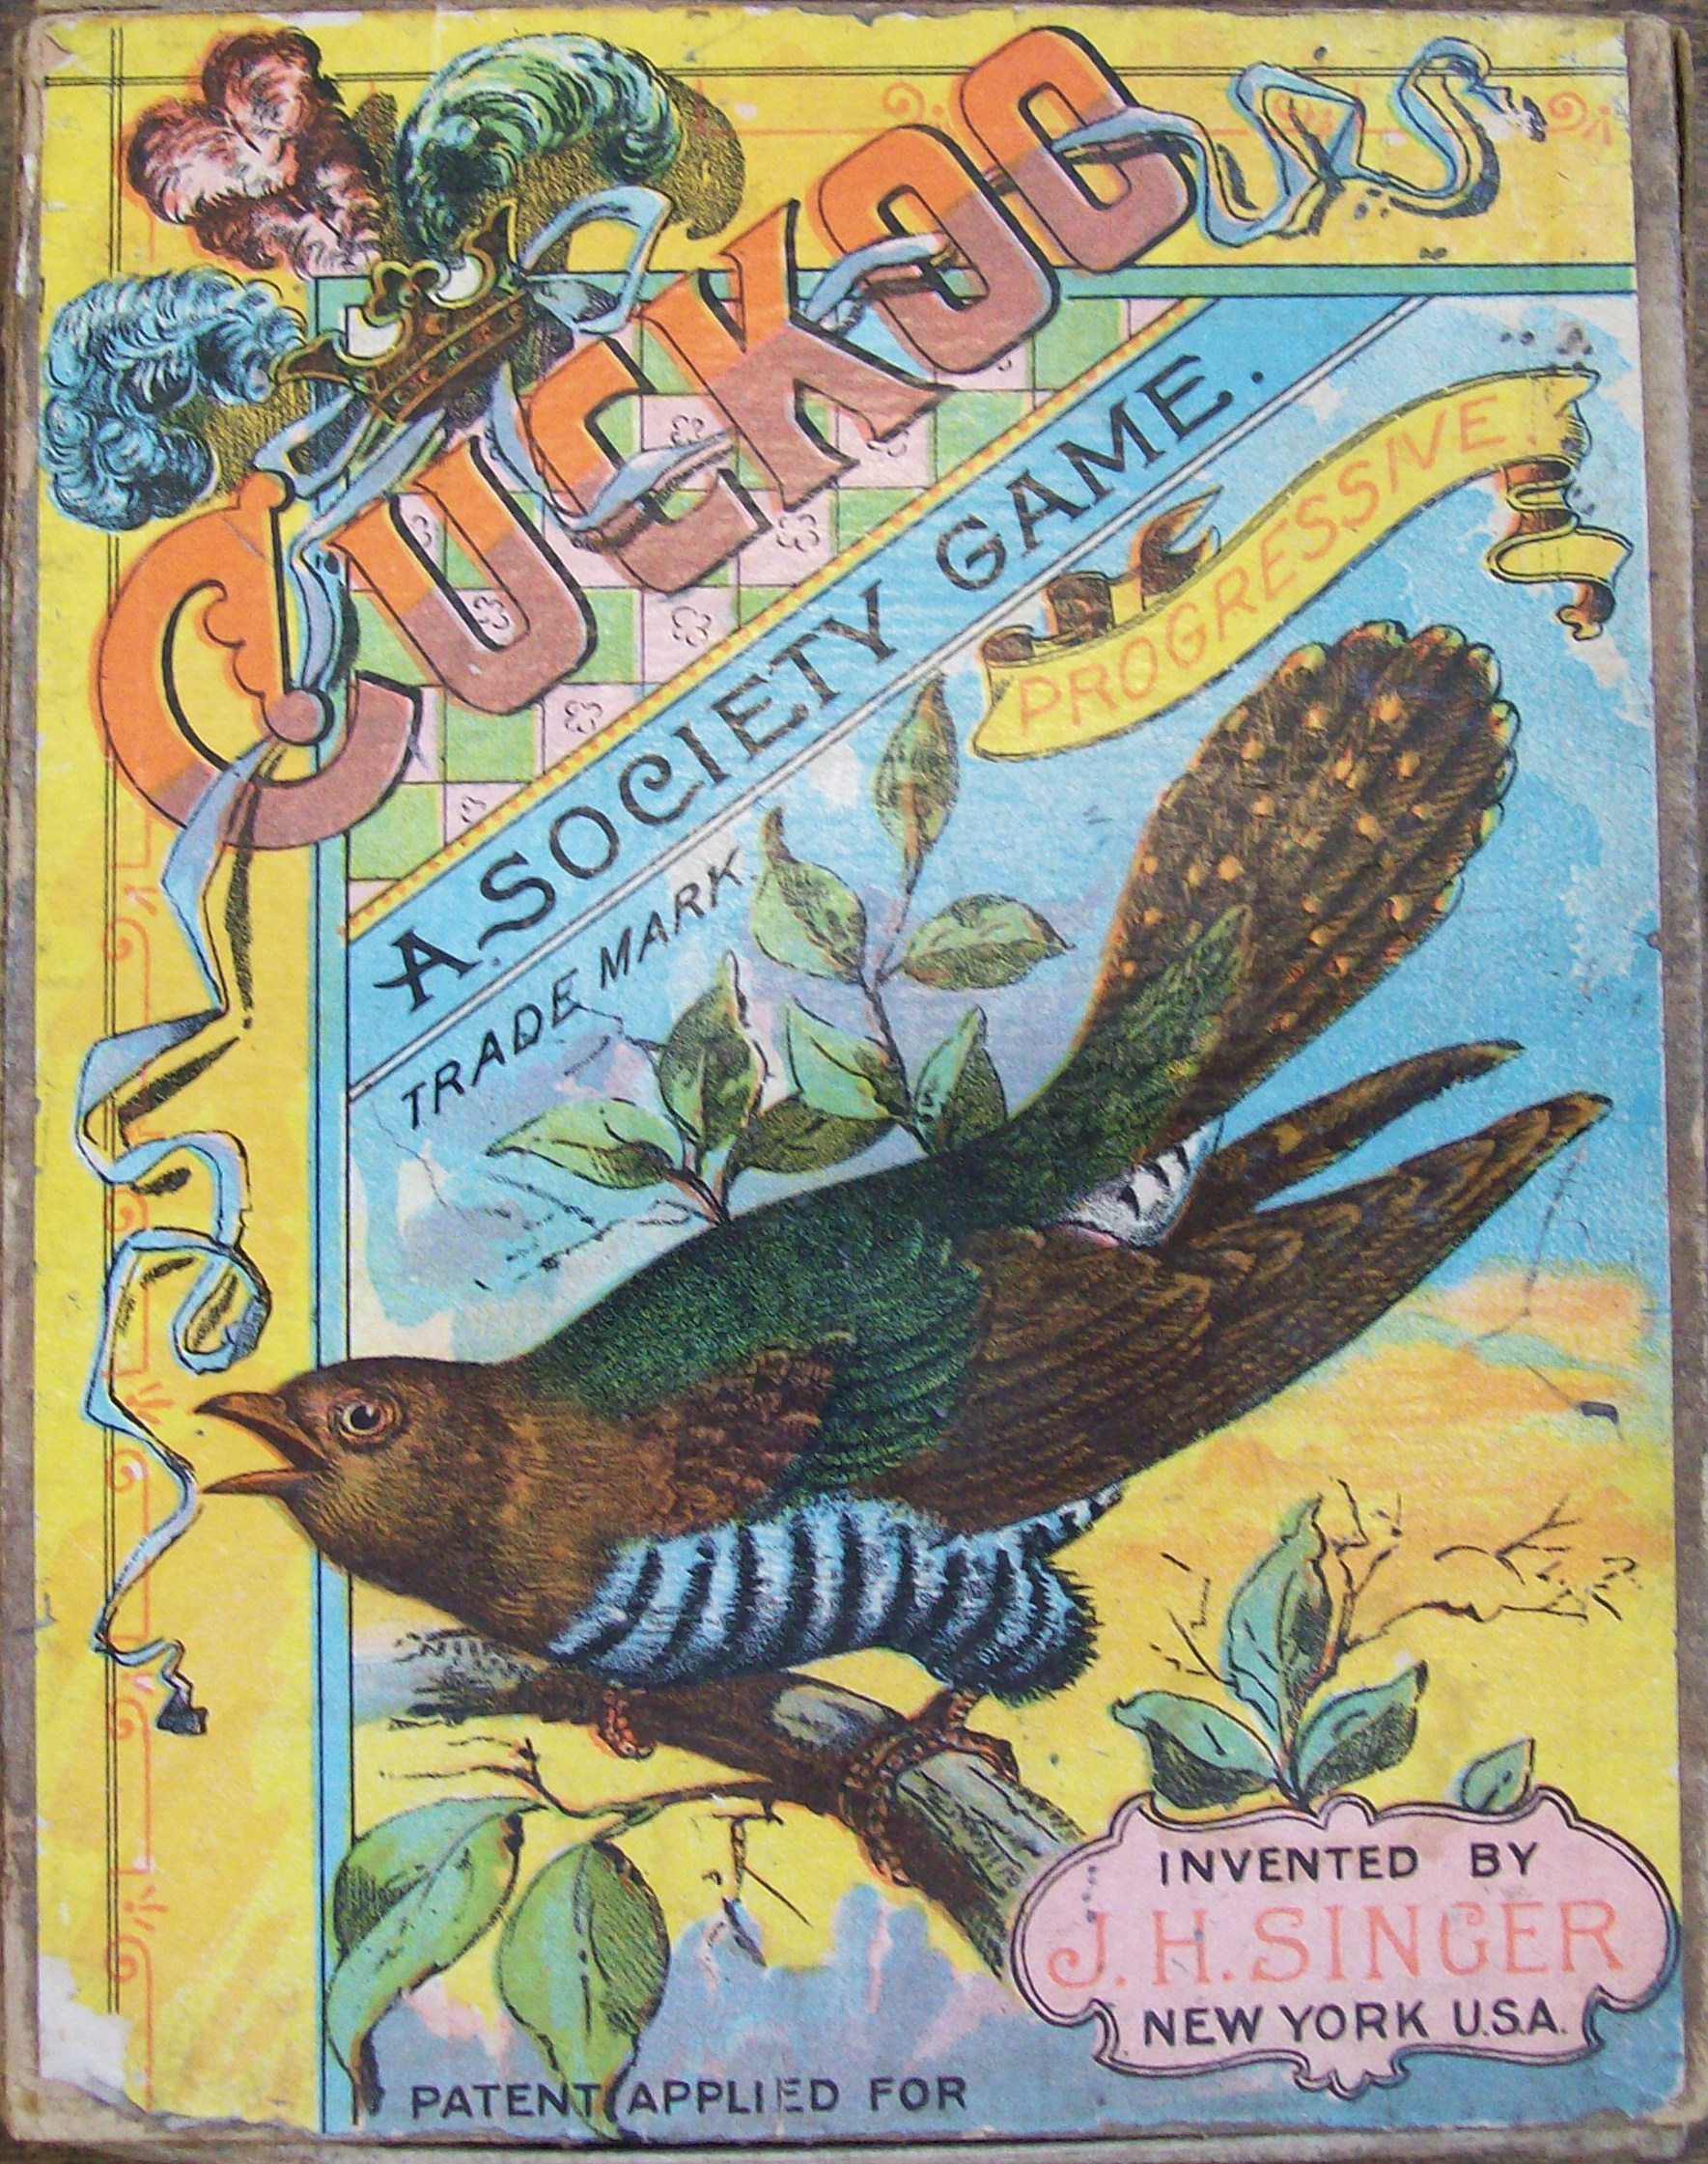 anitque game of J.H. Singer 1891 Cuckoo